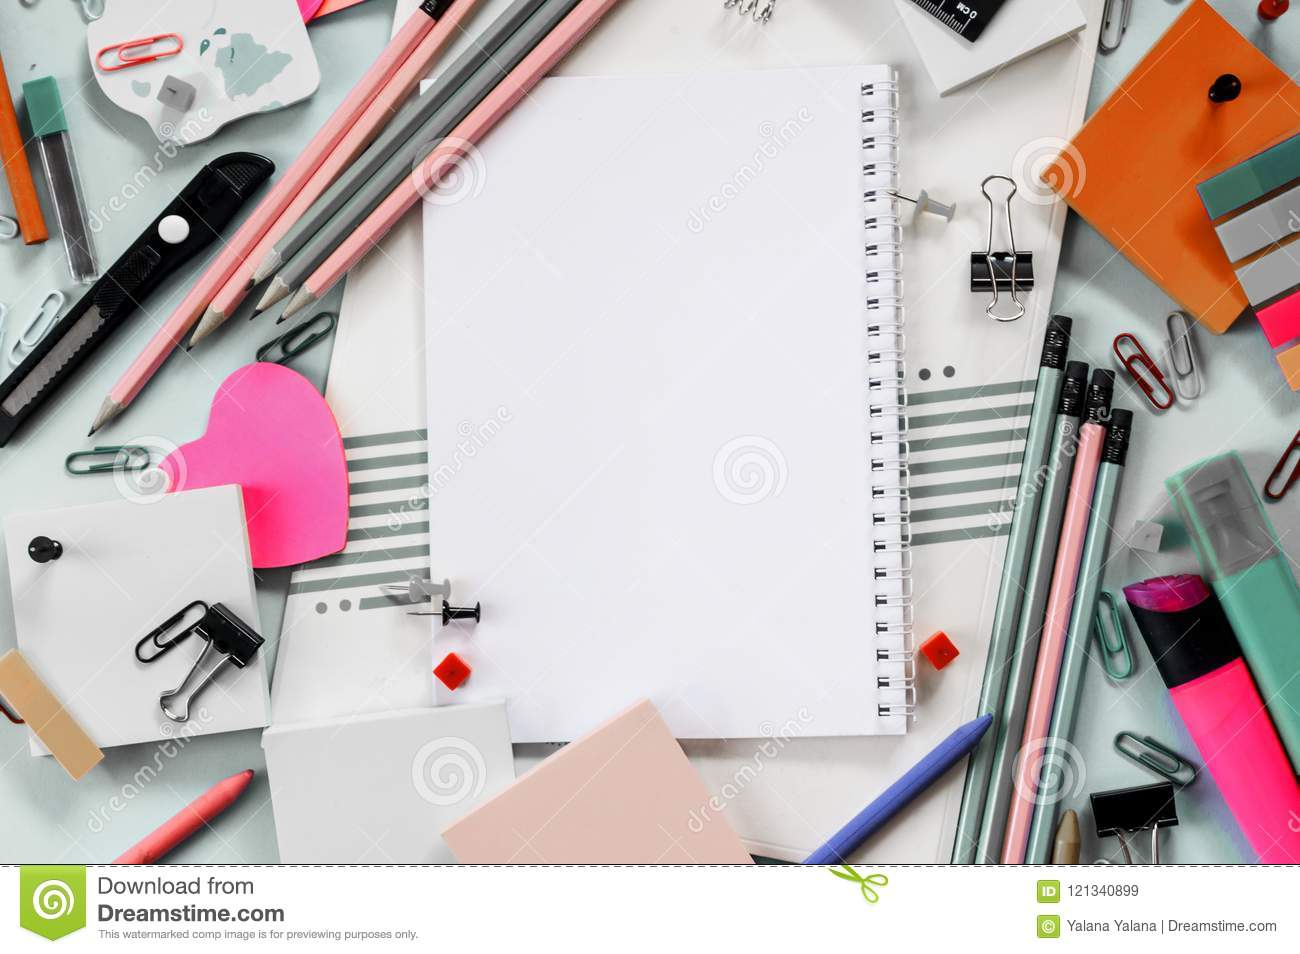 Colorful office accessories Funky Beautiful Office Supplies For School And Office On Blue Background Dreamstimecom Colorful School And Office Accessories Notebook Stock Image Image